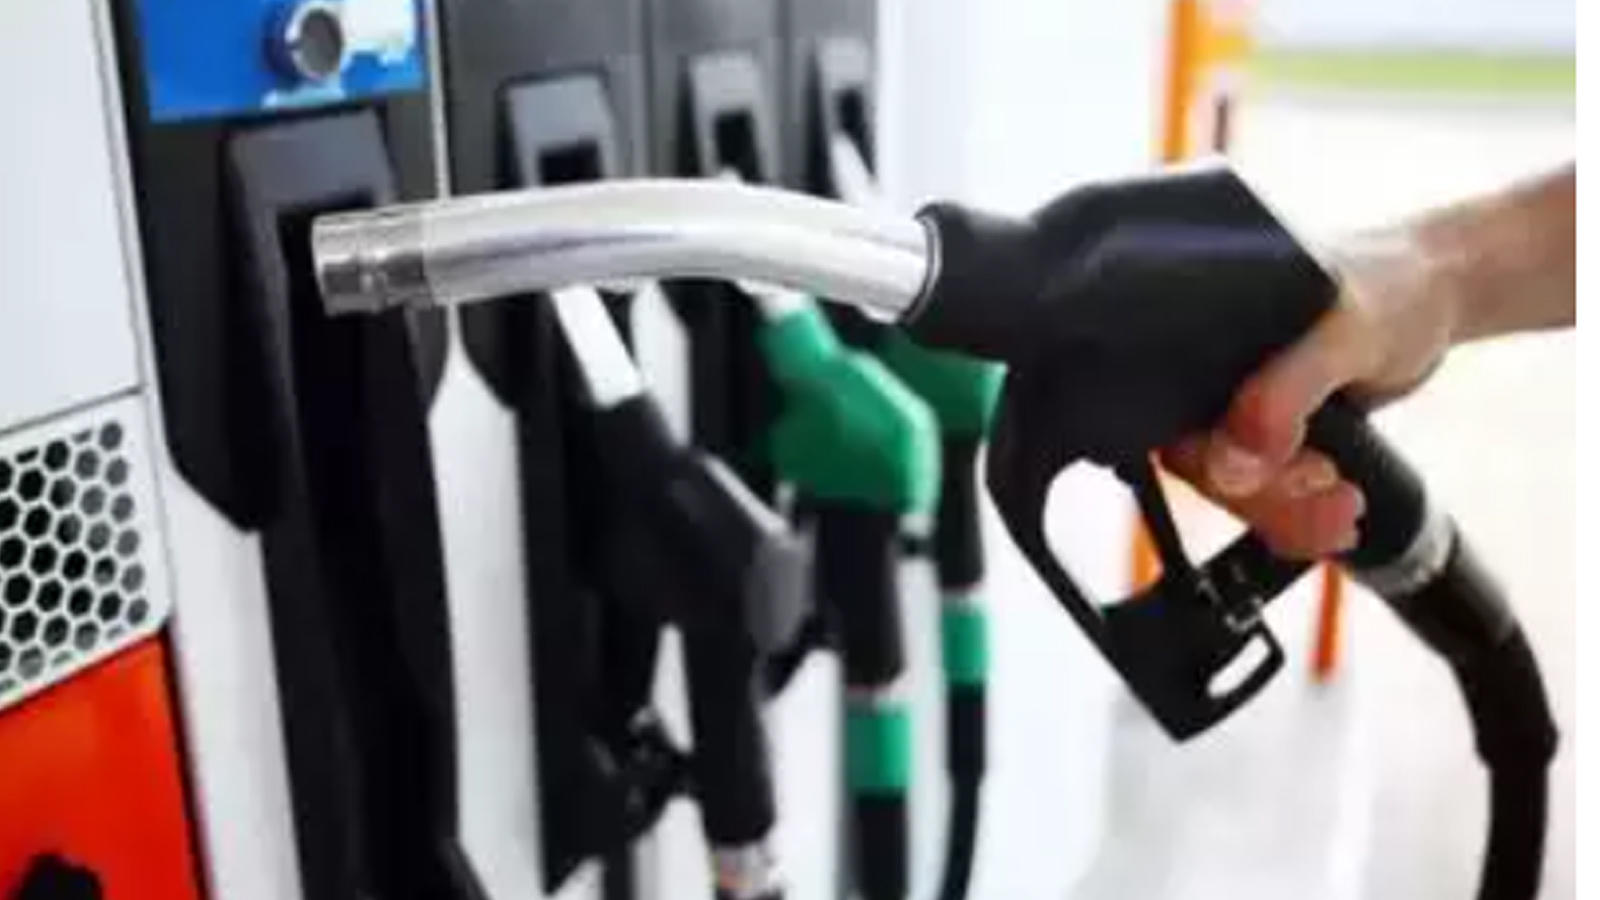 covid-19-fuel-demand-picks-up-in-july-with-an-increase-in-economic-activity